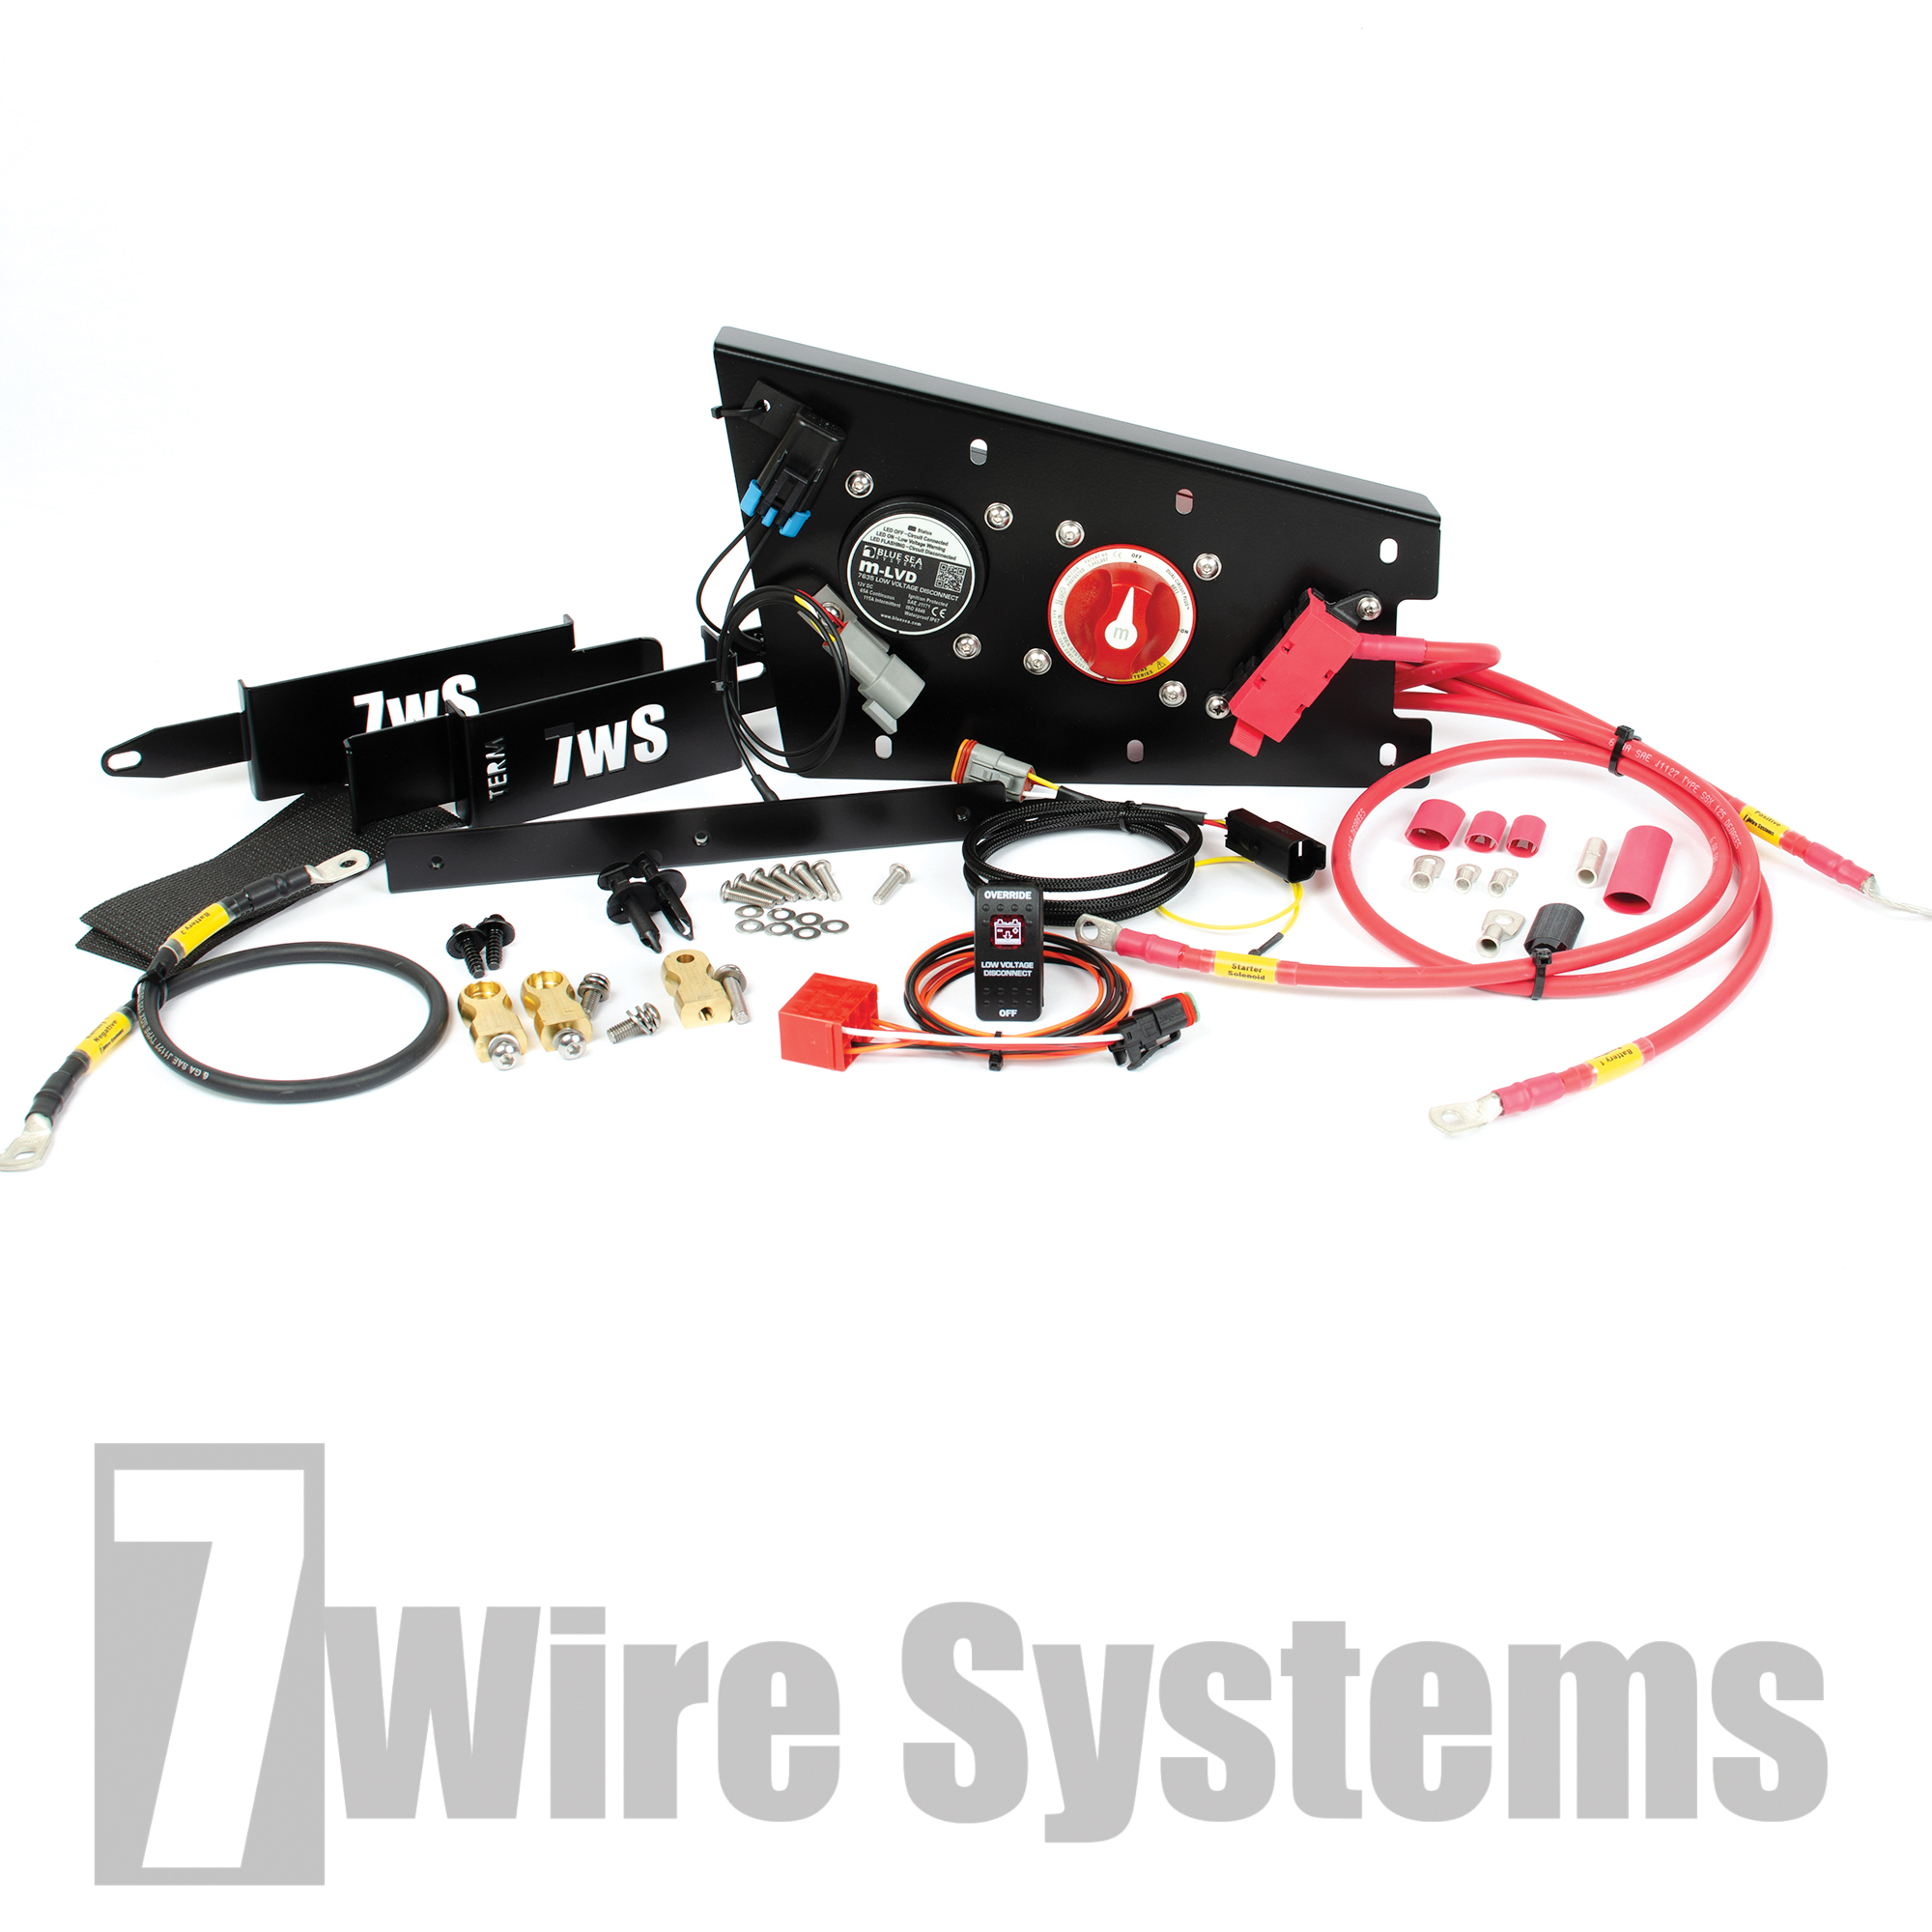 RZR GEN2 Dual Battery Kit